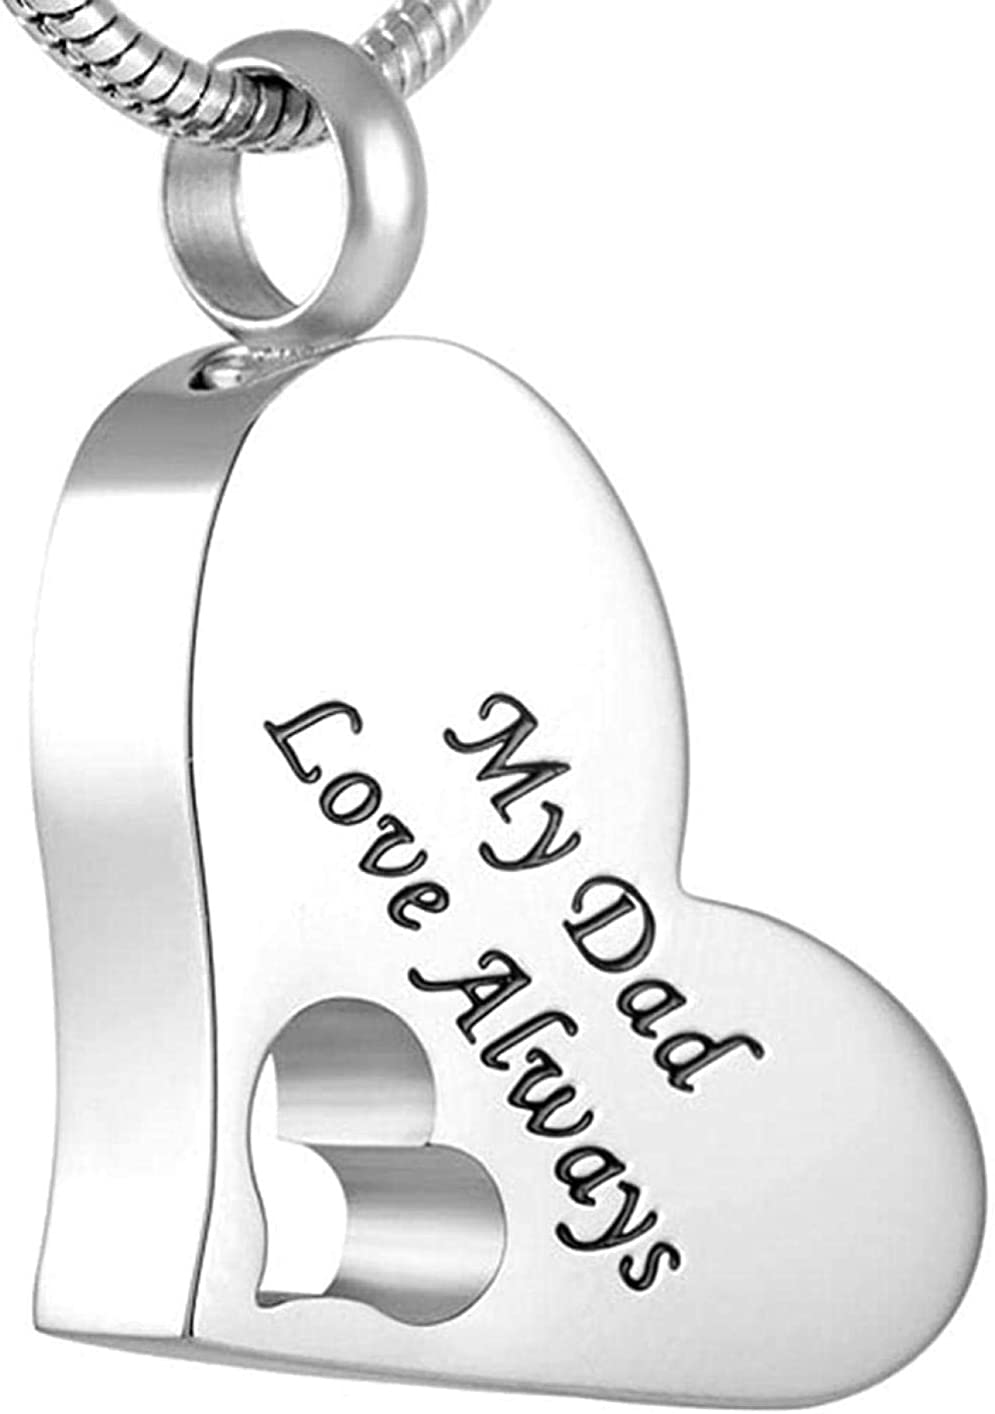 ZHSDTHJY Necklace Sales Cremation Translated Jewelry Ashes Dad Memorial Pendants